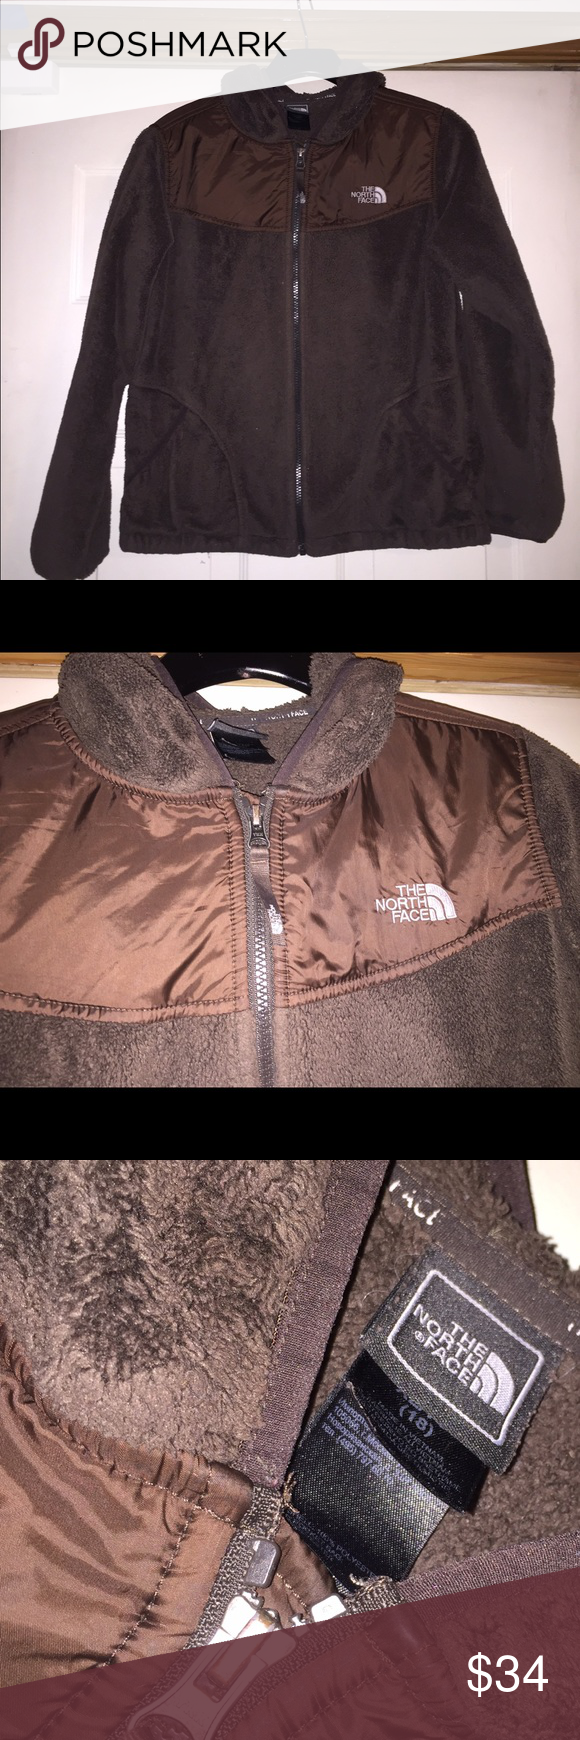 Leather jacket size 18 - Girls Tnf Chocolate Brown Oso Jacket Size 18 I M Sure This Would Fit A